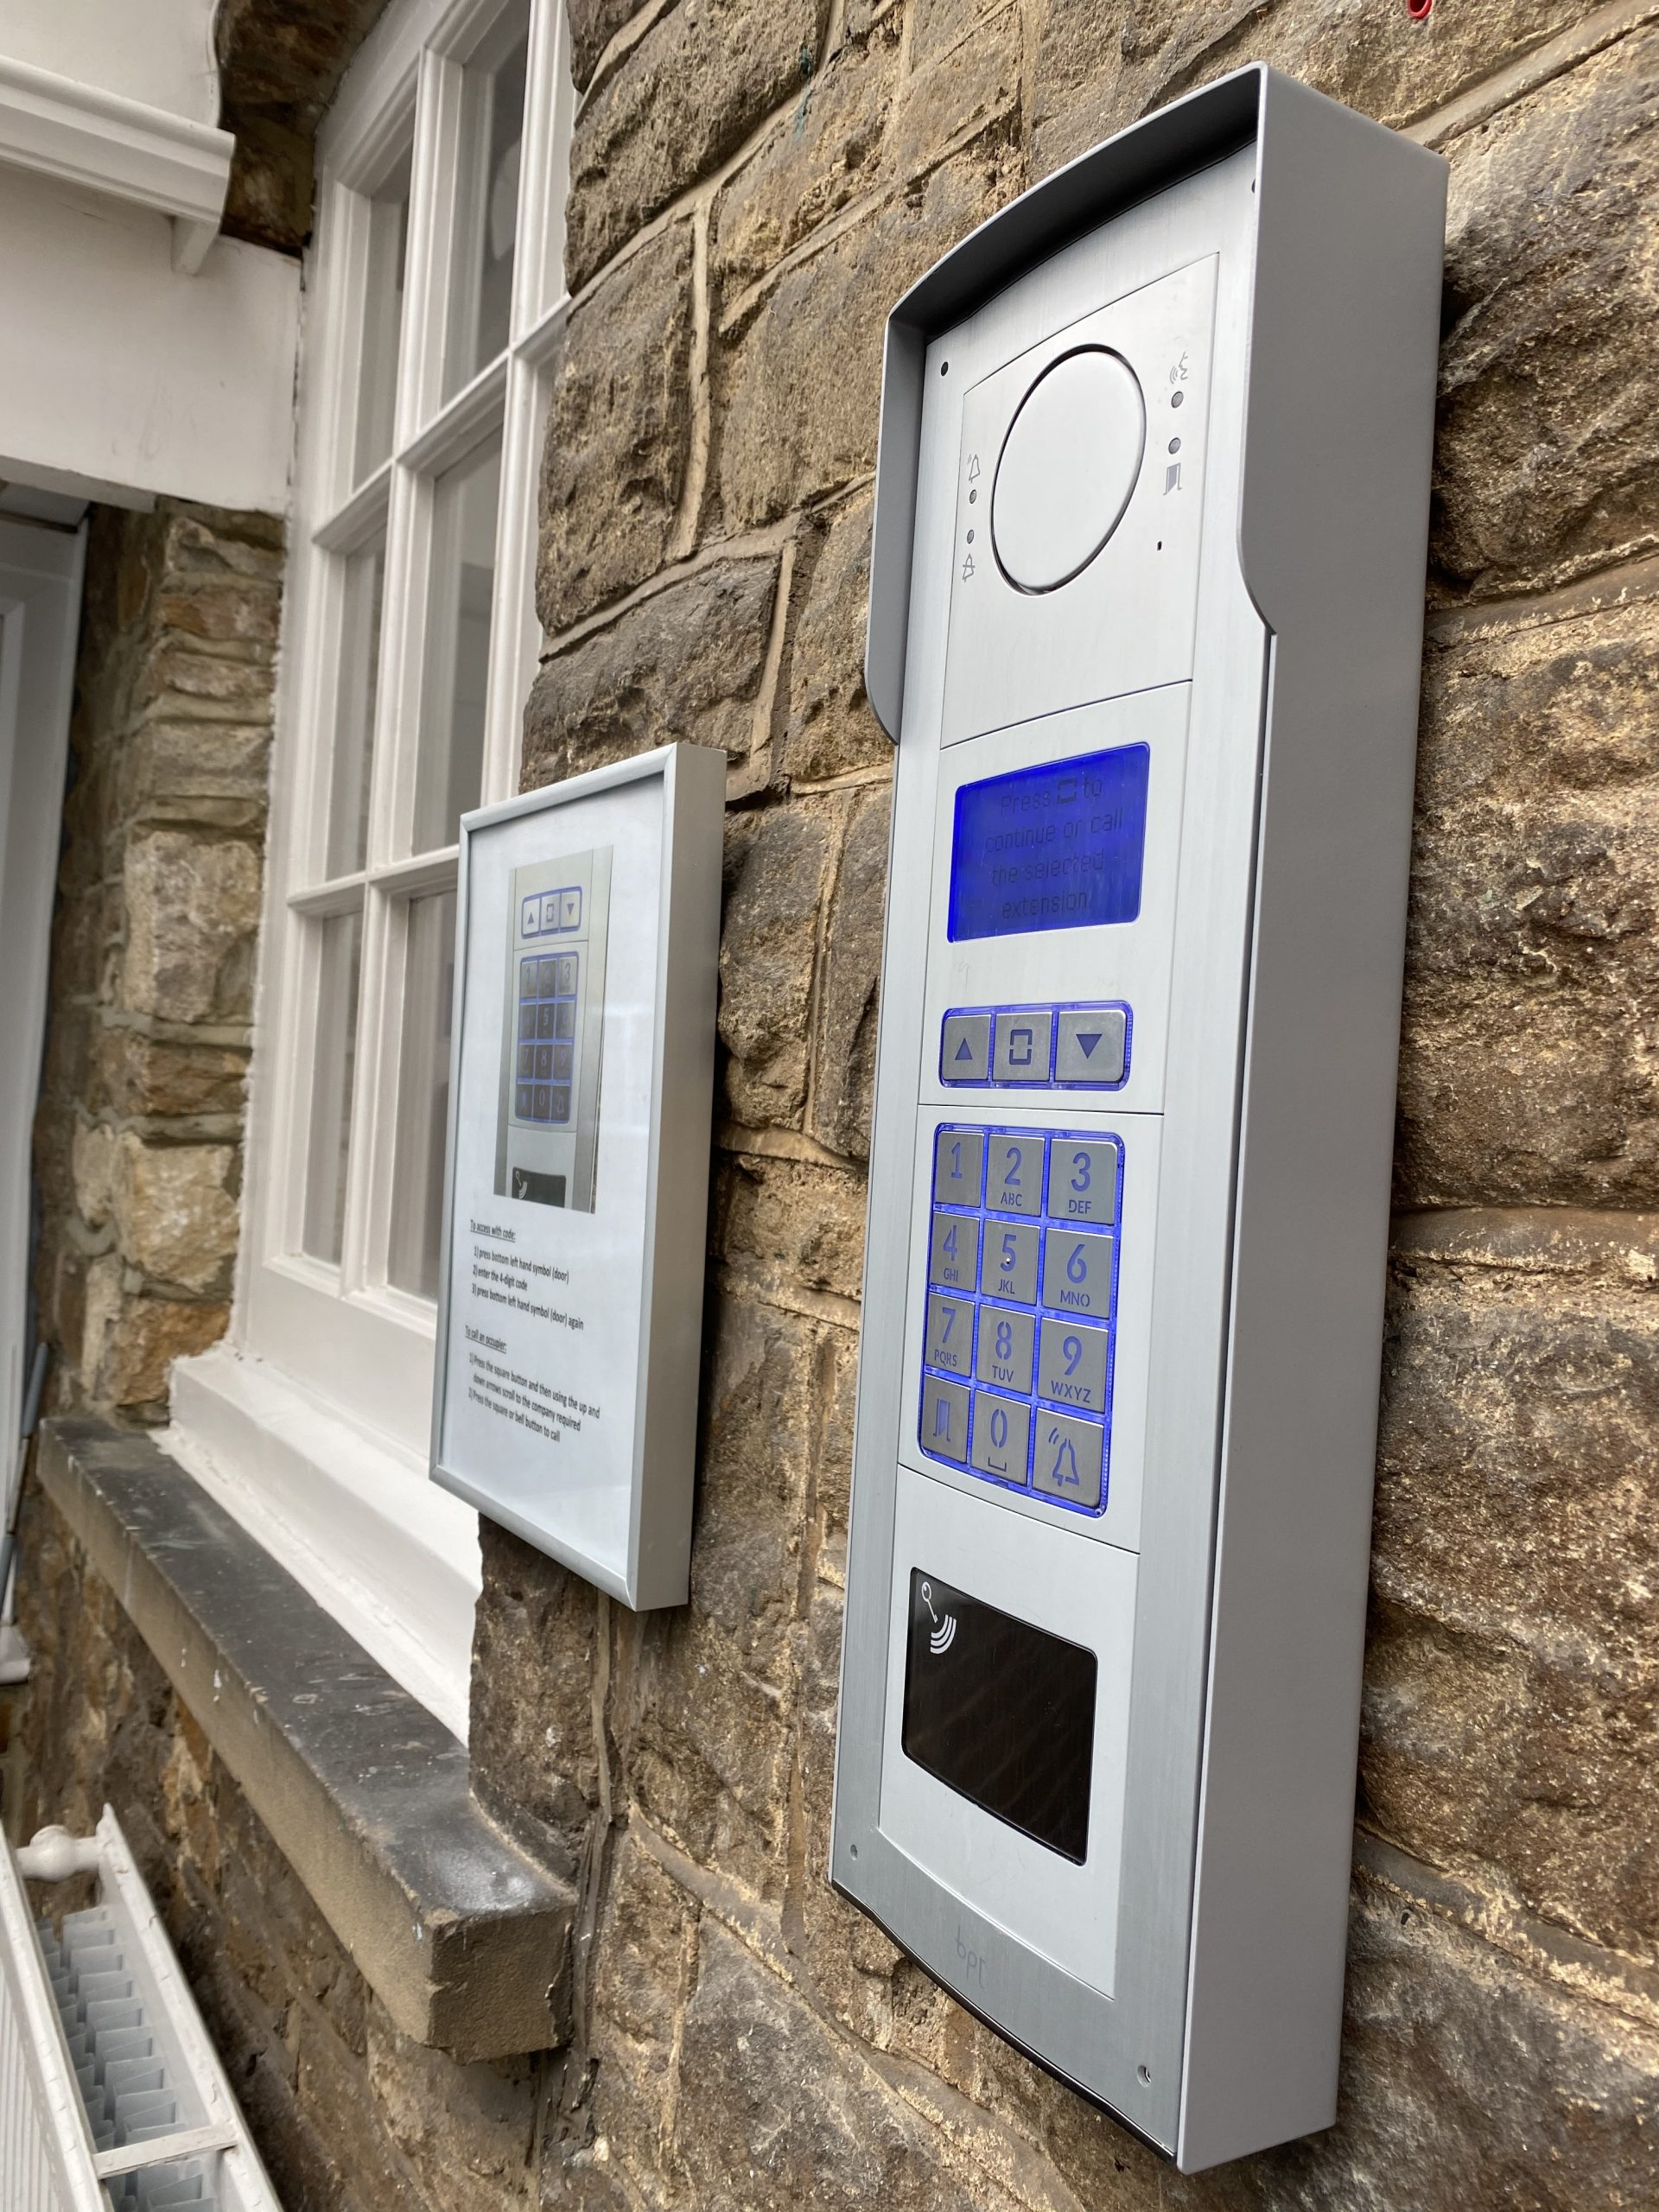 Tanshire Park touchless key locking system to reduce the spread of COVID-19